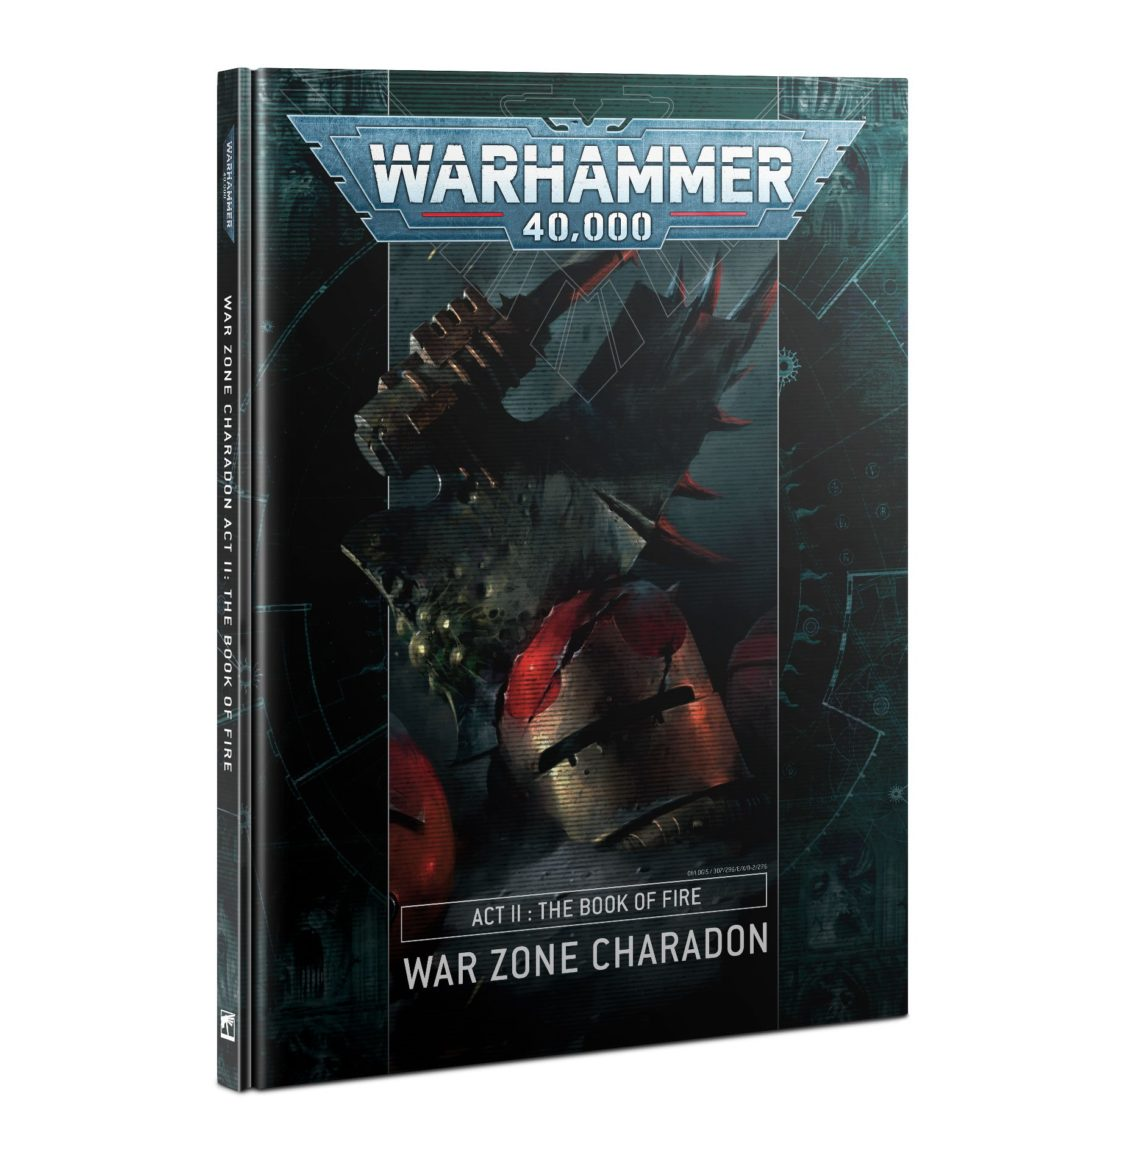 War Zone Charadon: Act II - Book of Fire (HB) (English)